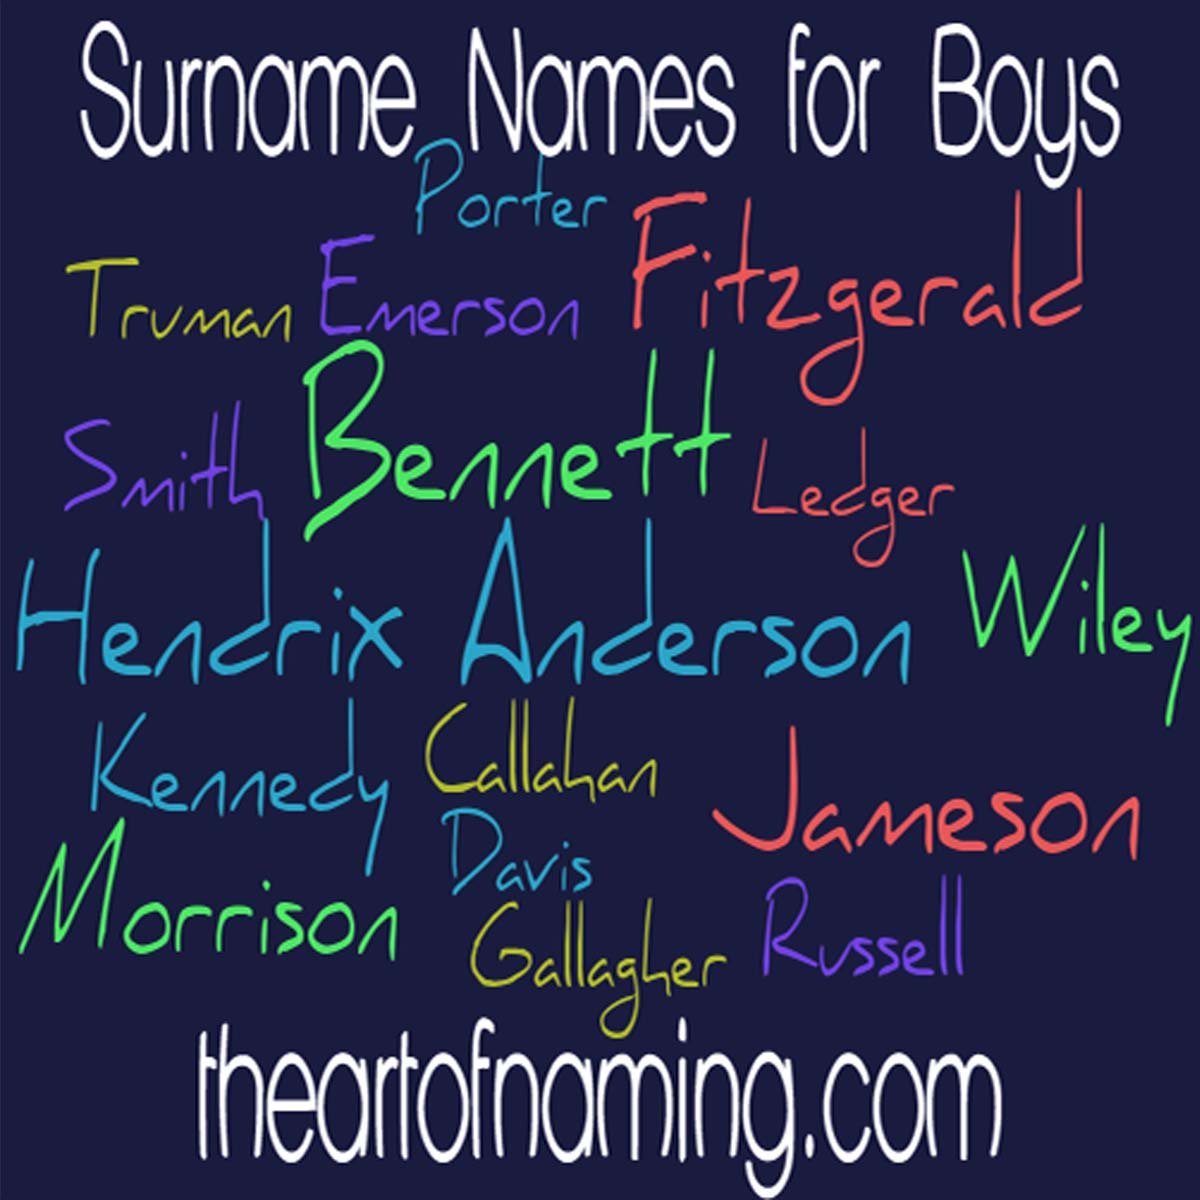 The Art of Naming: Surname Names for Boys